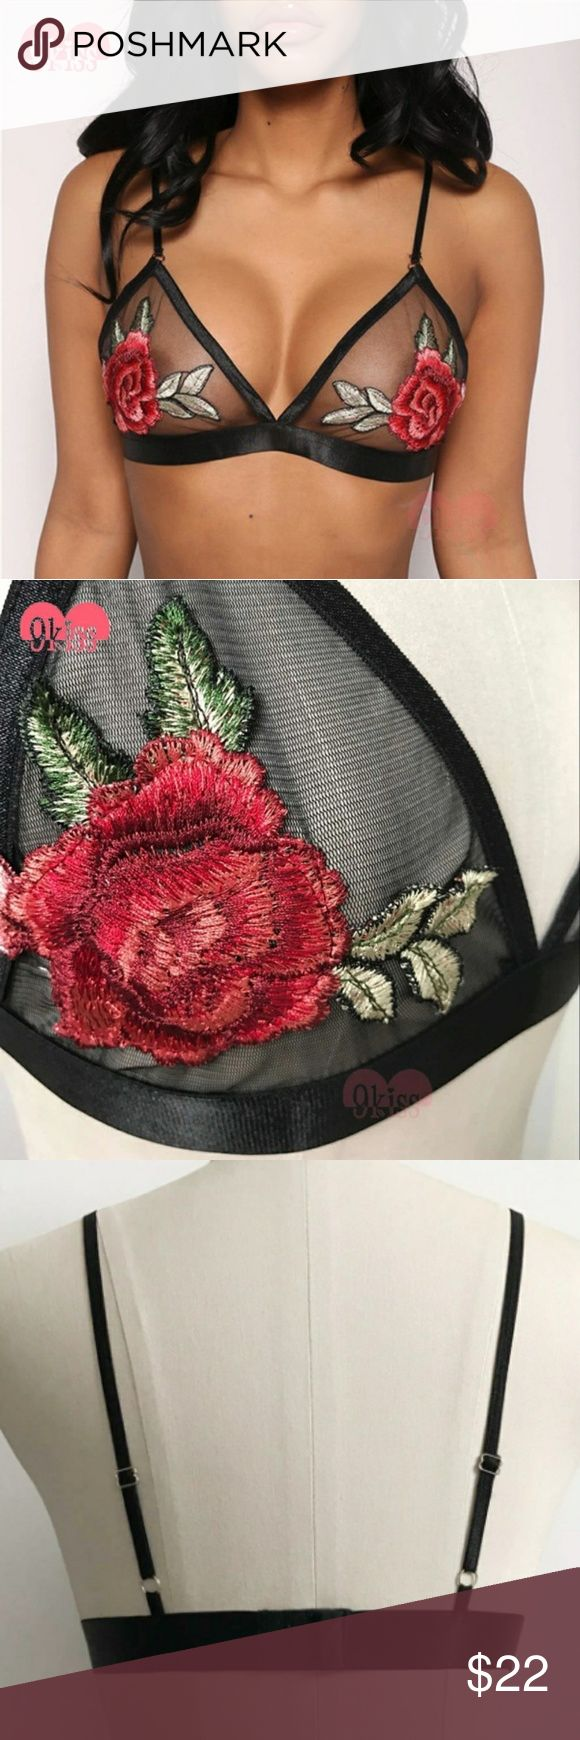 """NWT, Sexy and Cute Embroidery Bralette Bikini Top Black mesh with rose flower embroidery satin trim. Wear it alone or under a mesh or transparent top. Sizes available Small, Medium and Large. Brand New with tag.  Small bust fits 28"""" to 31in Medium bust fits 29in to 33in Large bust fits 30in to 35in Intimates & Sleepwear Bras"""